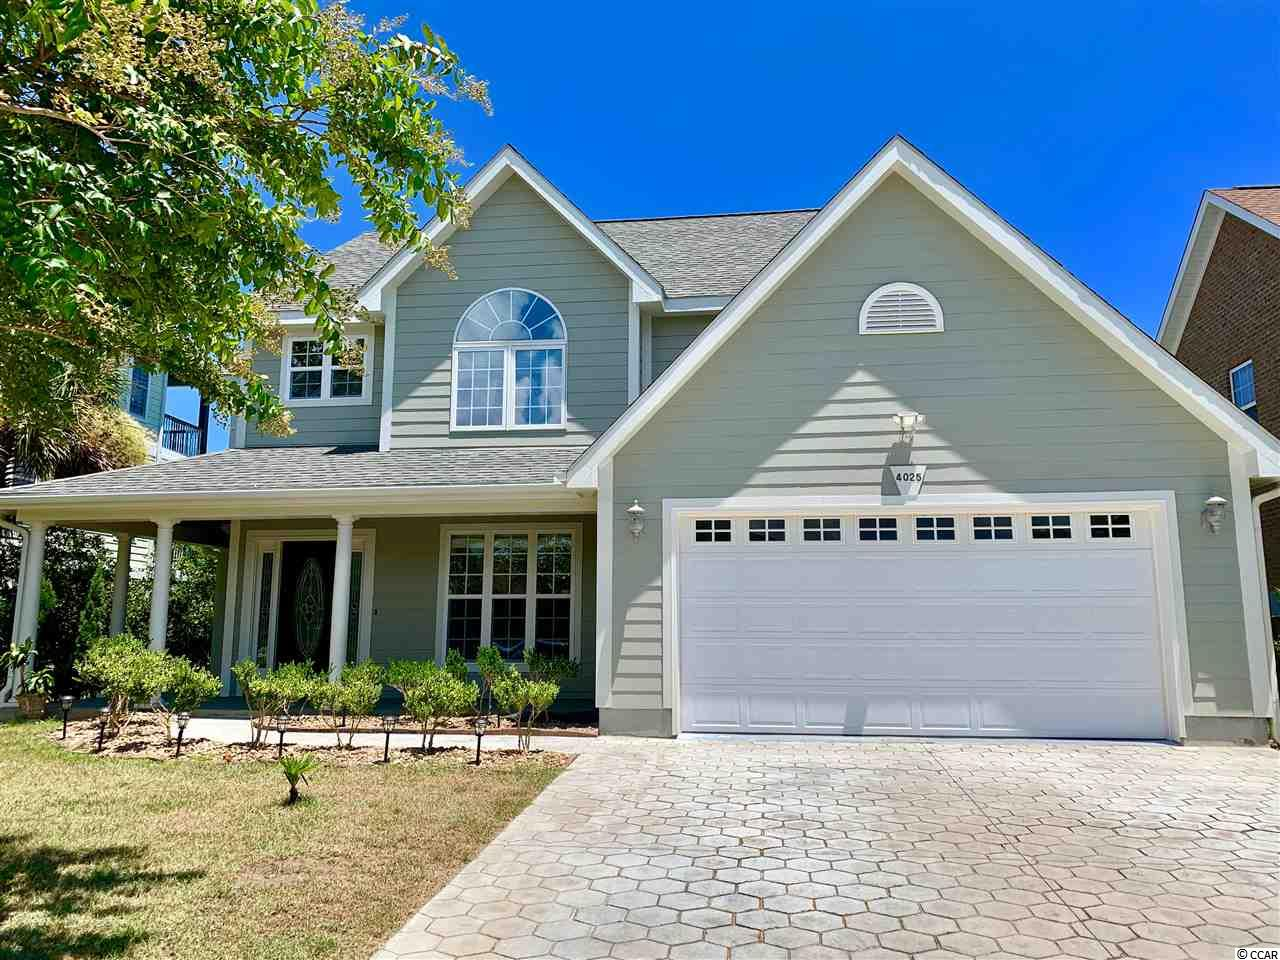 DON'T MISS THIS CHANCE TO PURCHASE IN THE BLUFFS ON THE WATERWAY.  This home has a tall entry way foyer, private dining room, family room with see through fireplace, granite kitchen, stainless appliances, ceiling surround sound, whirlpool tub, tall ceilings in the bedrooms, large private back yard, wood flooring, ceramic tile flooring, and you get to pick the new bedroom carpet colors through a flooring allowance.  This neighborhood has boat storage, boat ramp, tennis courts, club house, swimming pool, and is located perfectly in Carolina Forest near shopping, restaurants, medical, and of course just a few minutes to the beach.